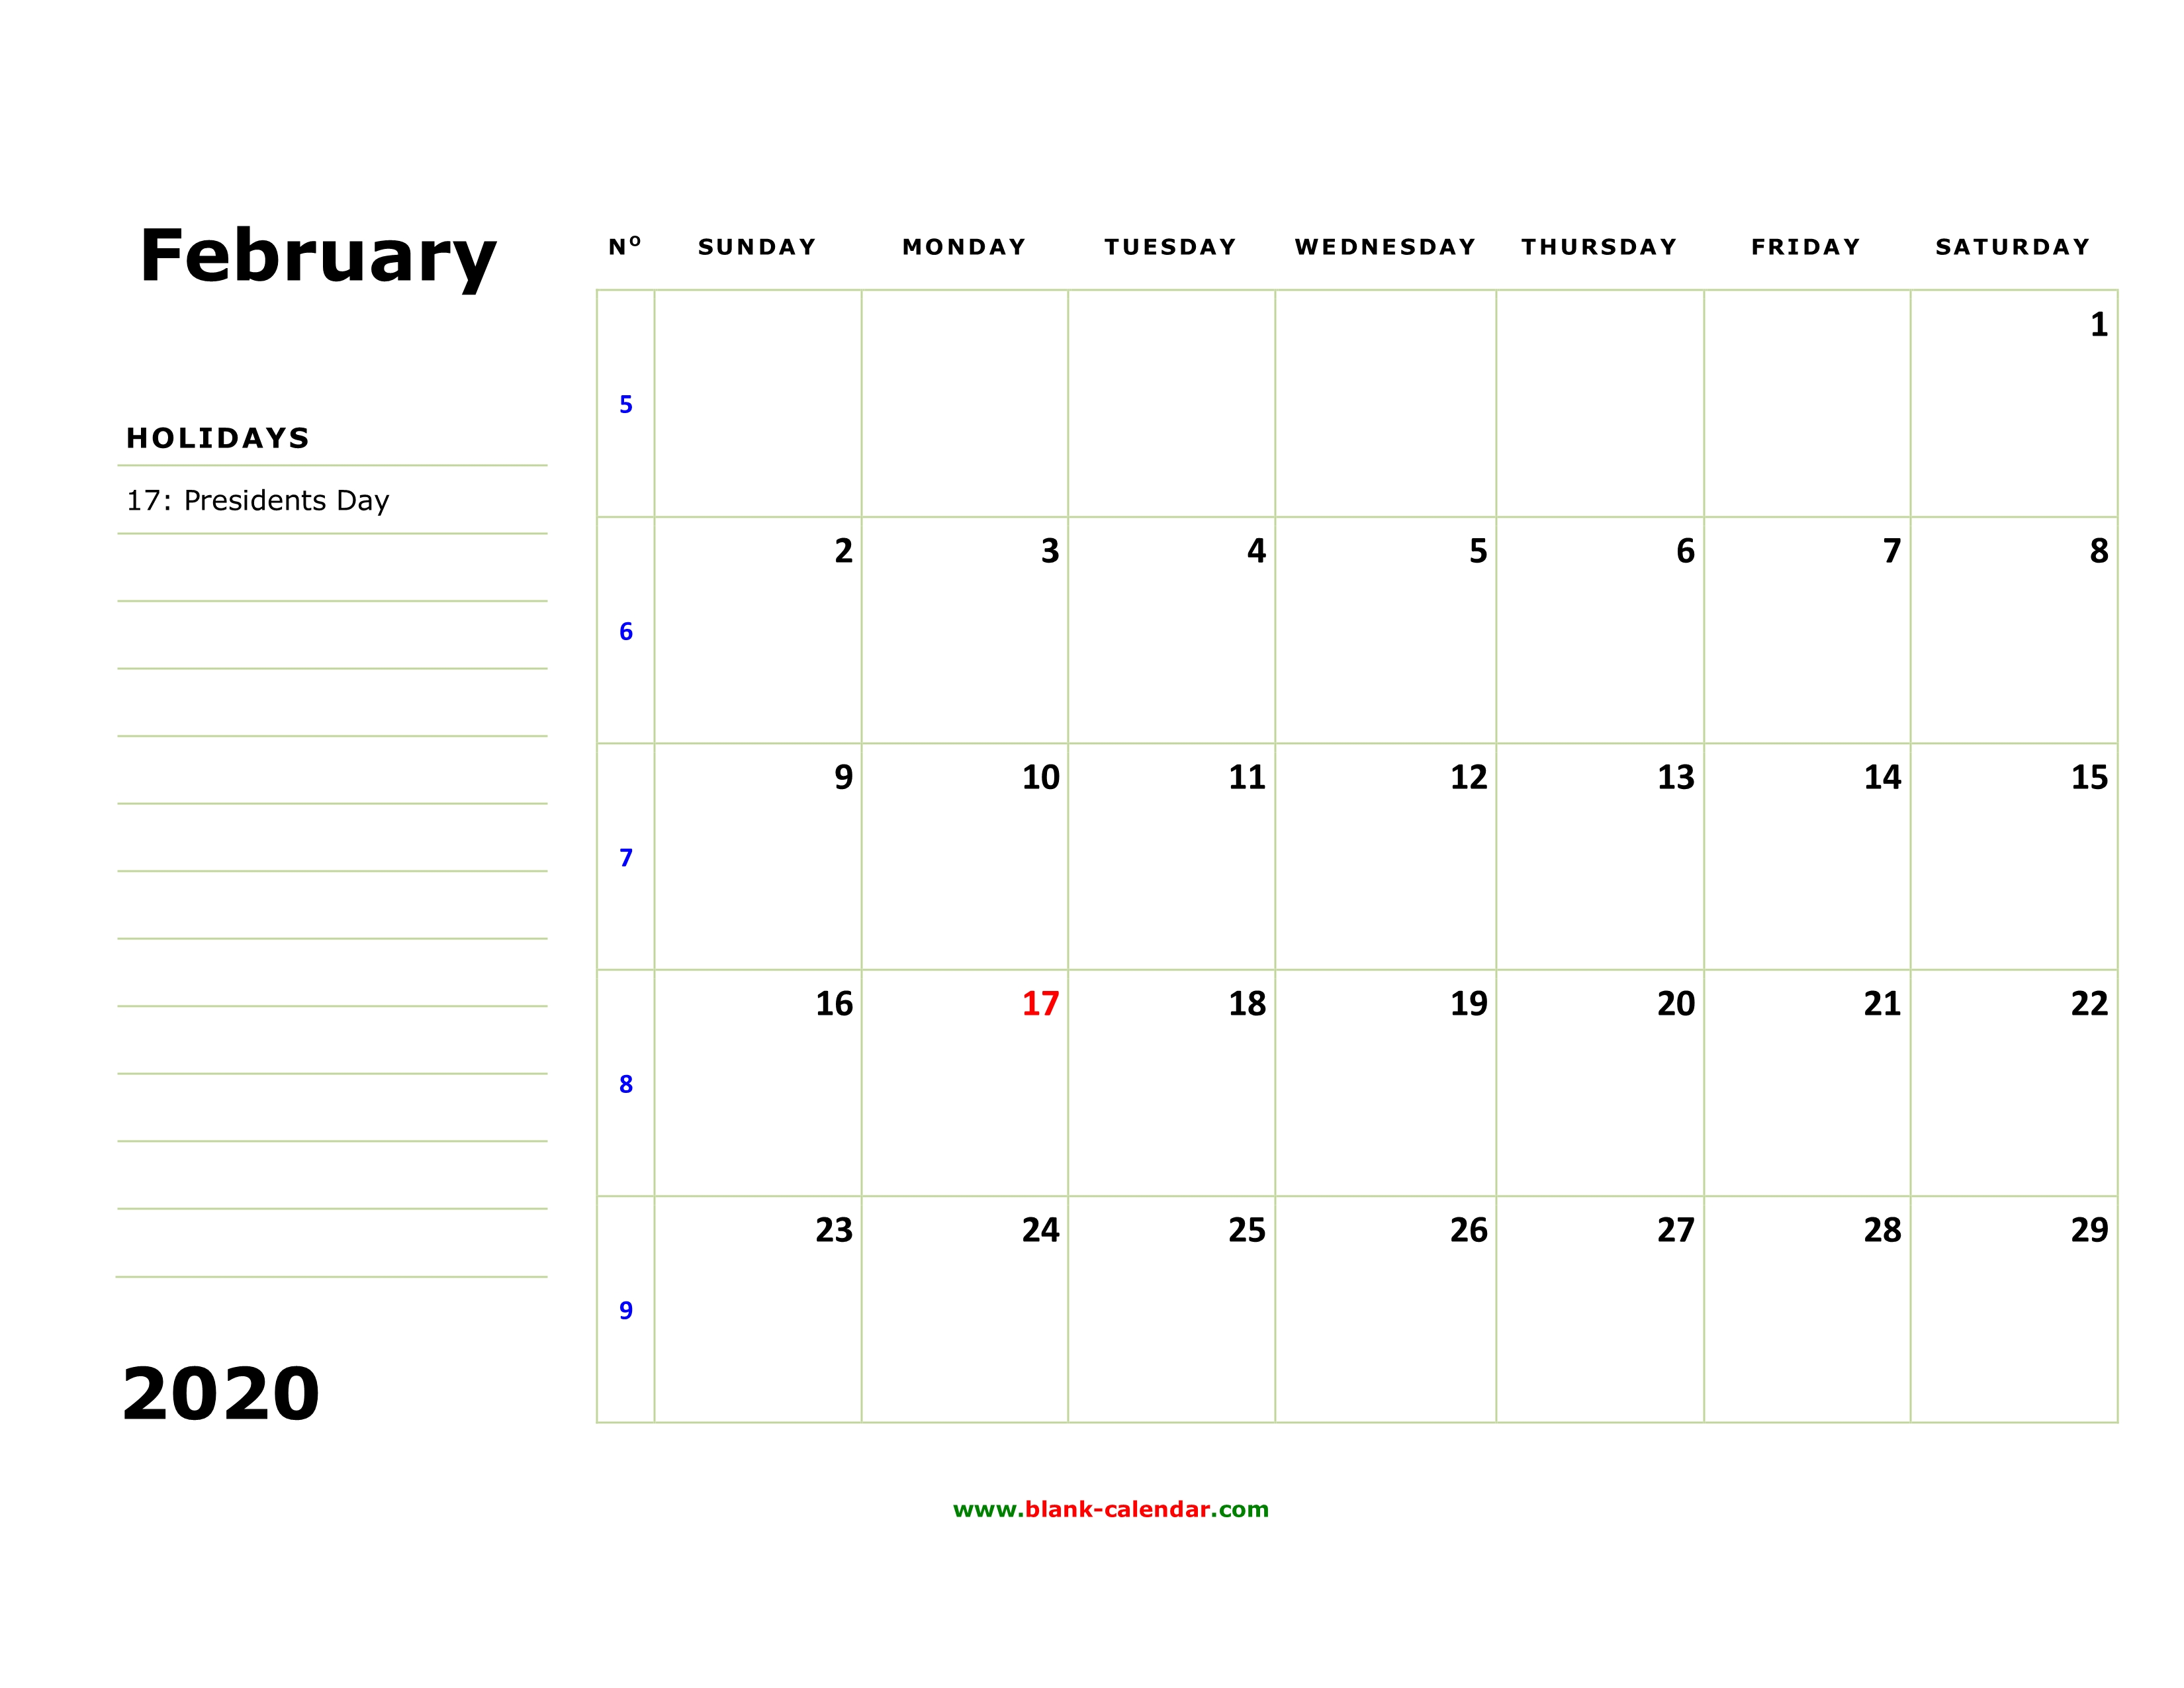 Free February 2020 Calendar Large Spaces Free Download Printable February 2020 Calendar, large box